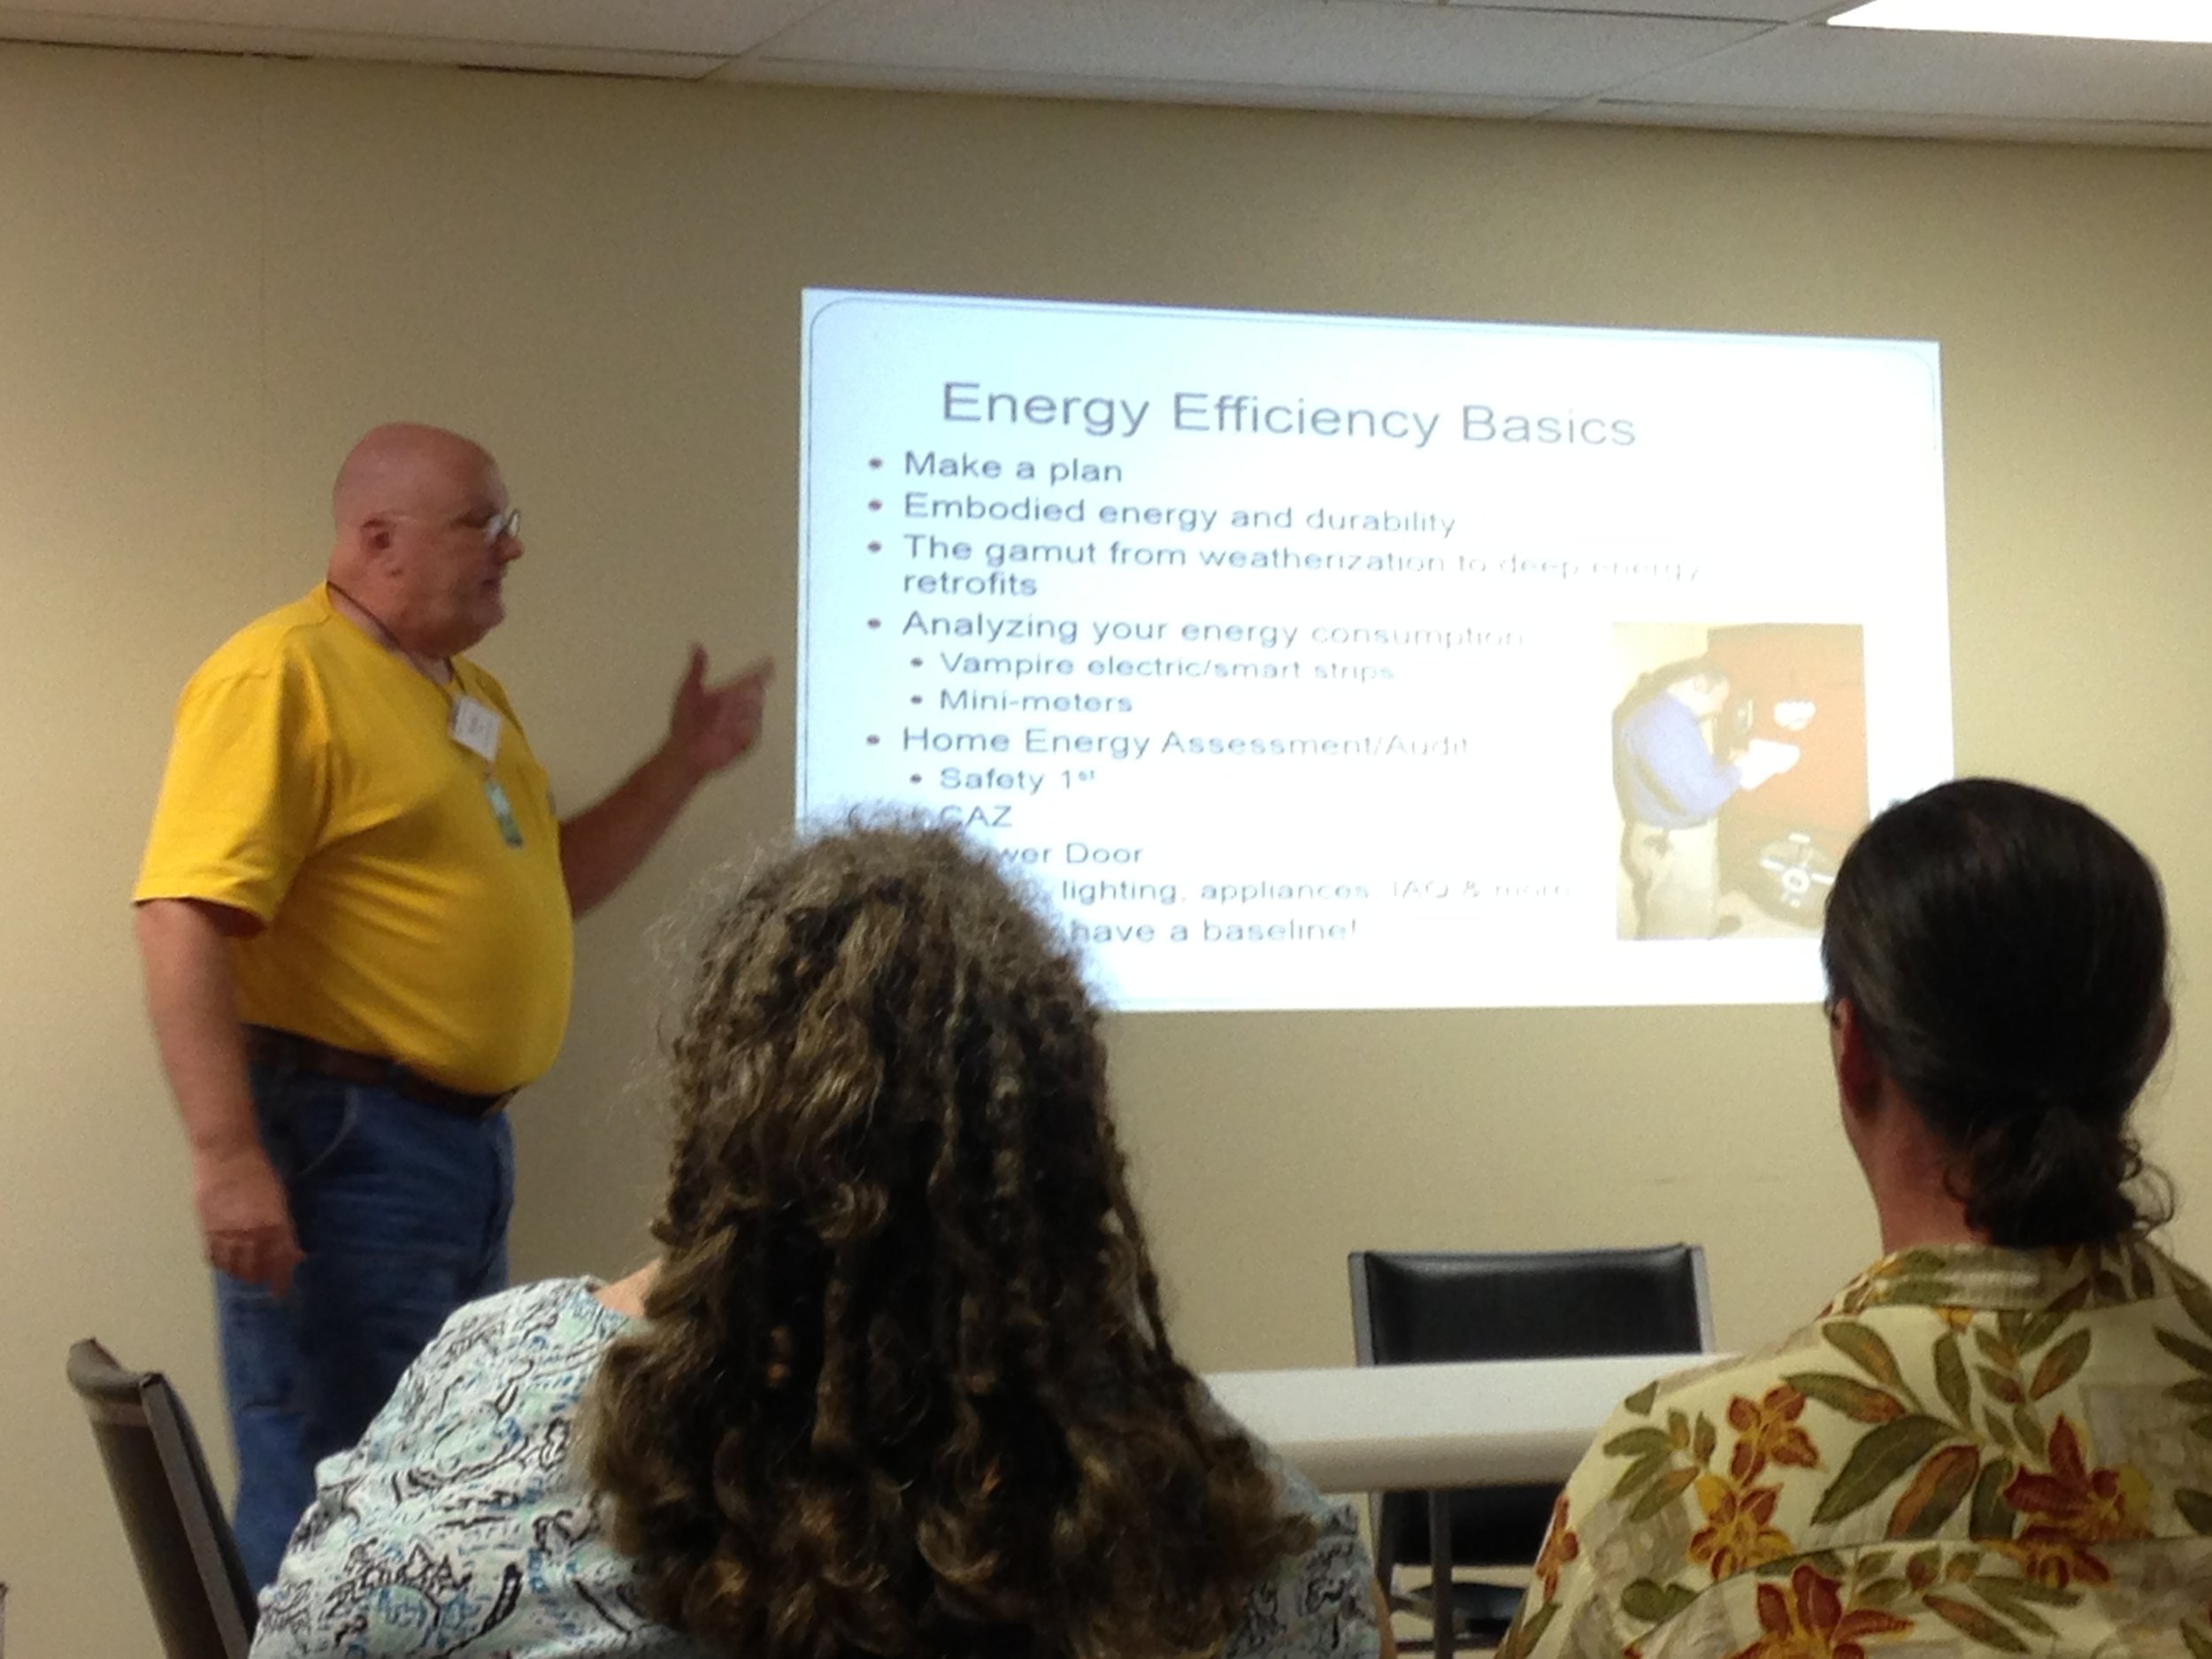 Richard Reilly, from MoBot, presents at the Energy Conservation seminar.